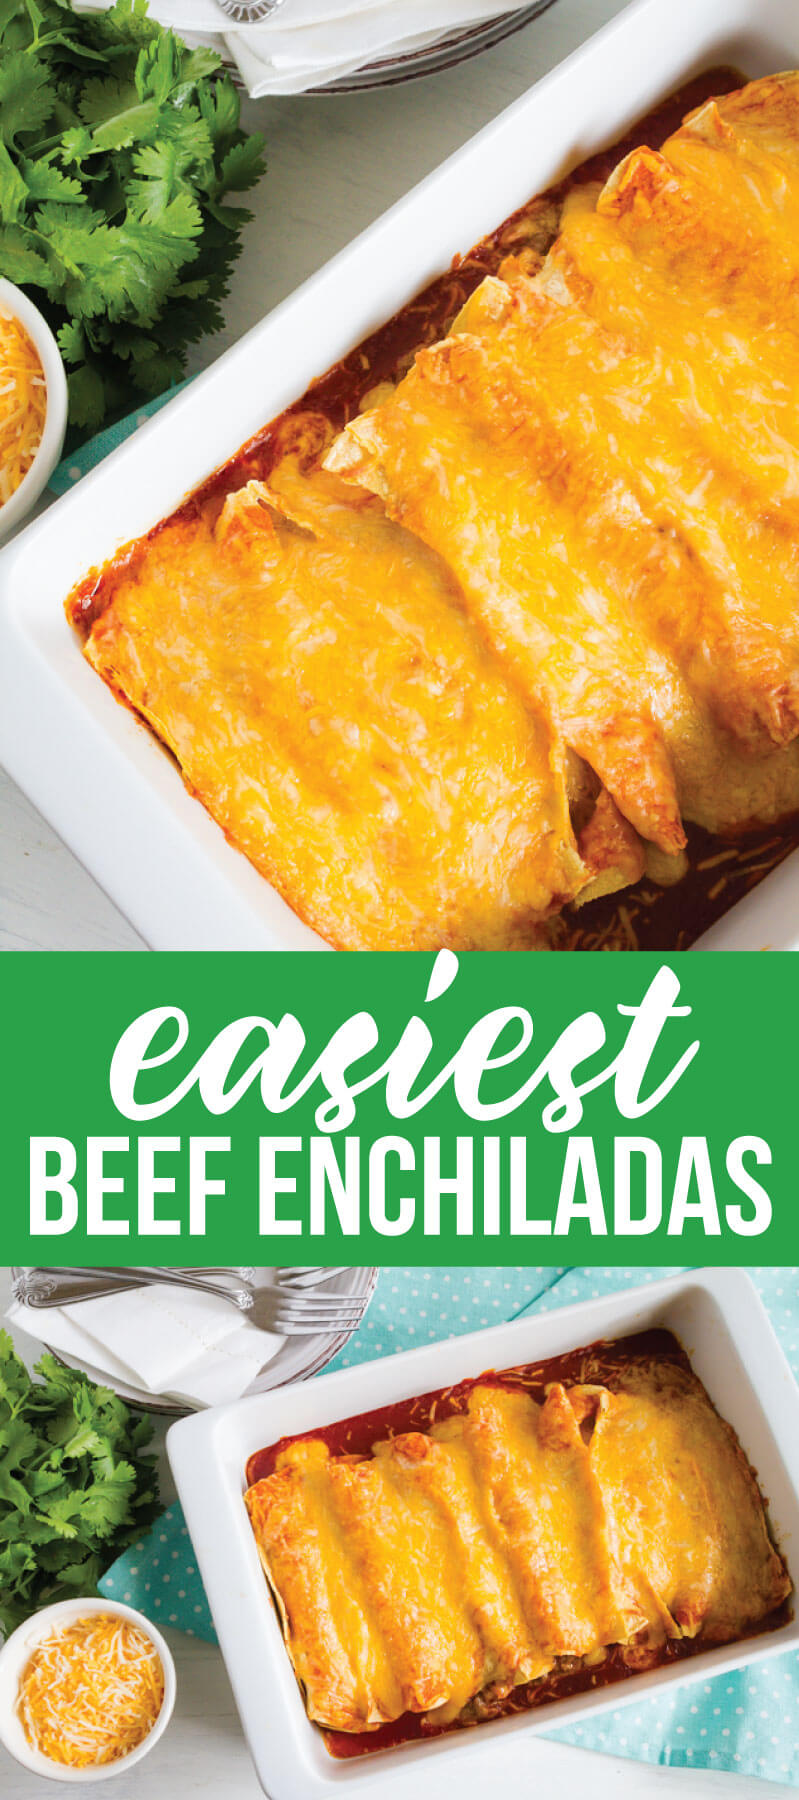 Easiest Homemade Beef Enchiladas Ever! This main dish recipe takes minutes to make.  www.thirtyhandmadedays.com